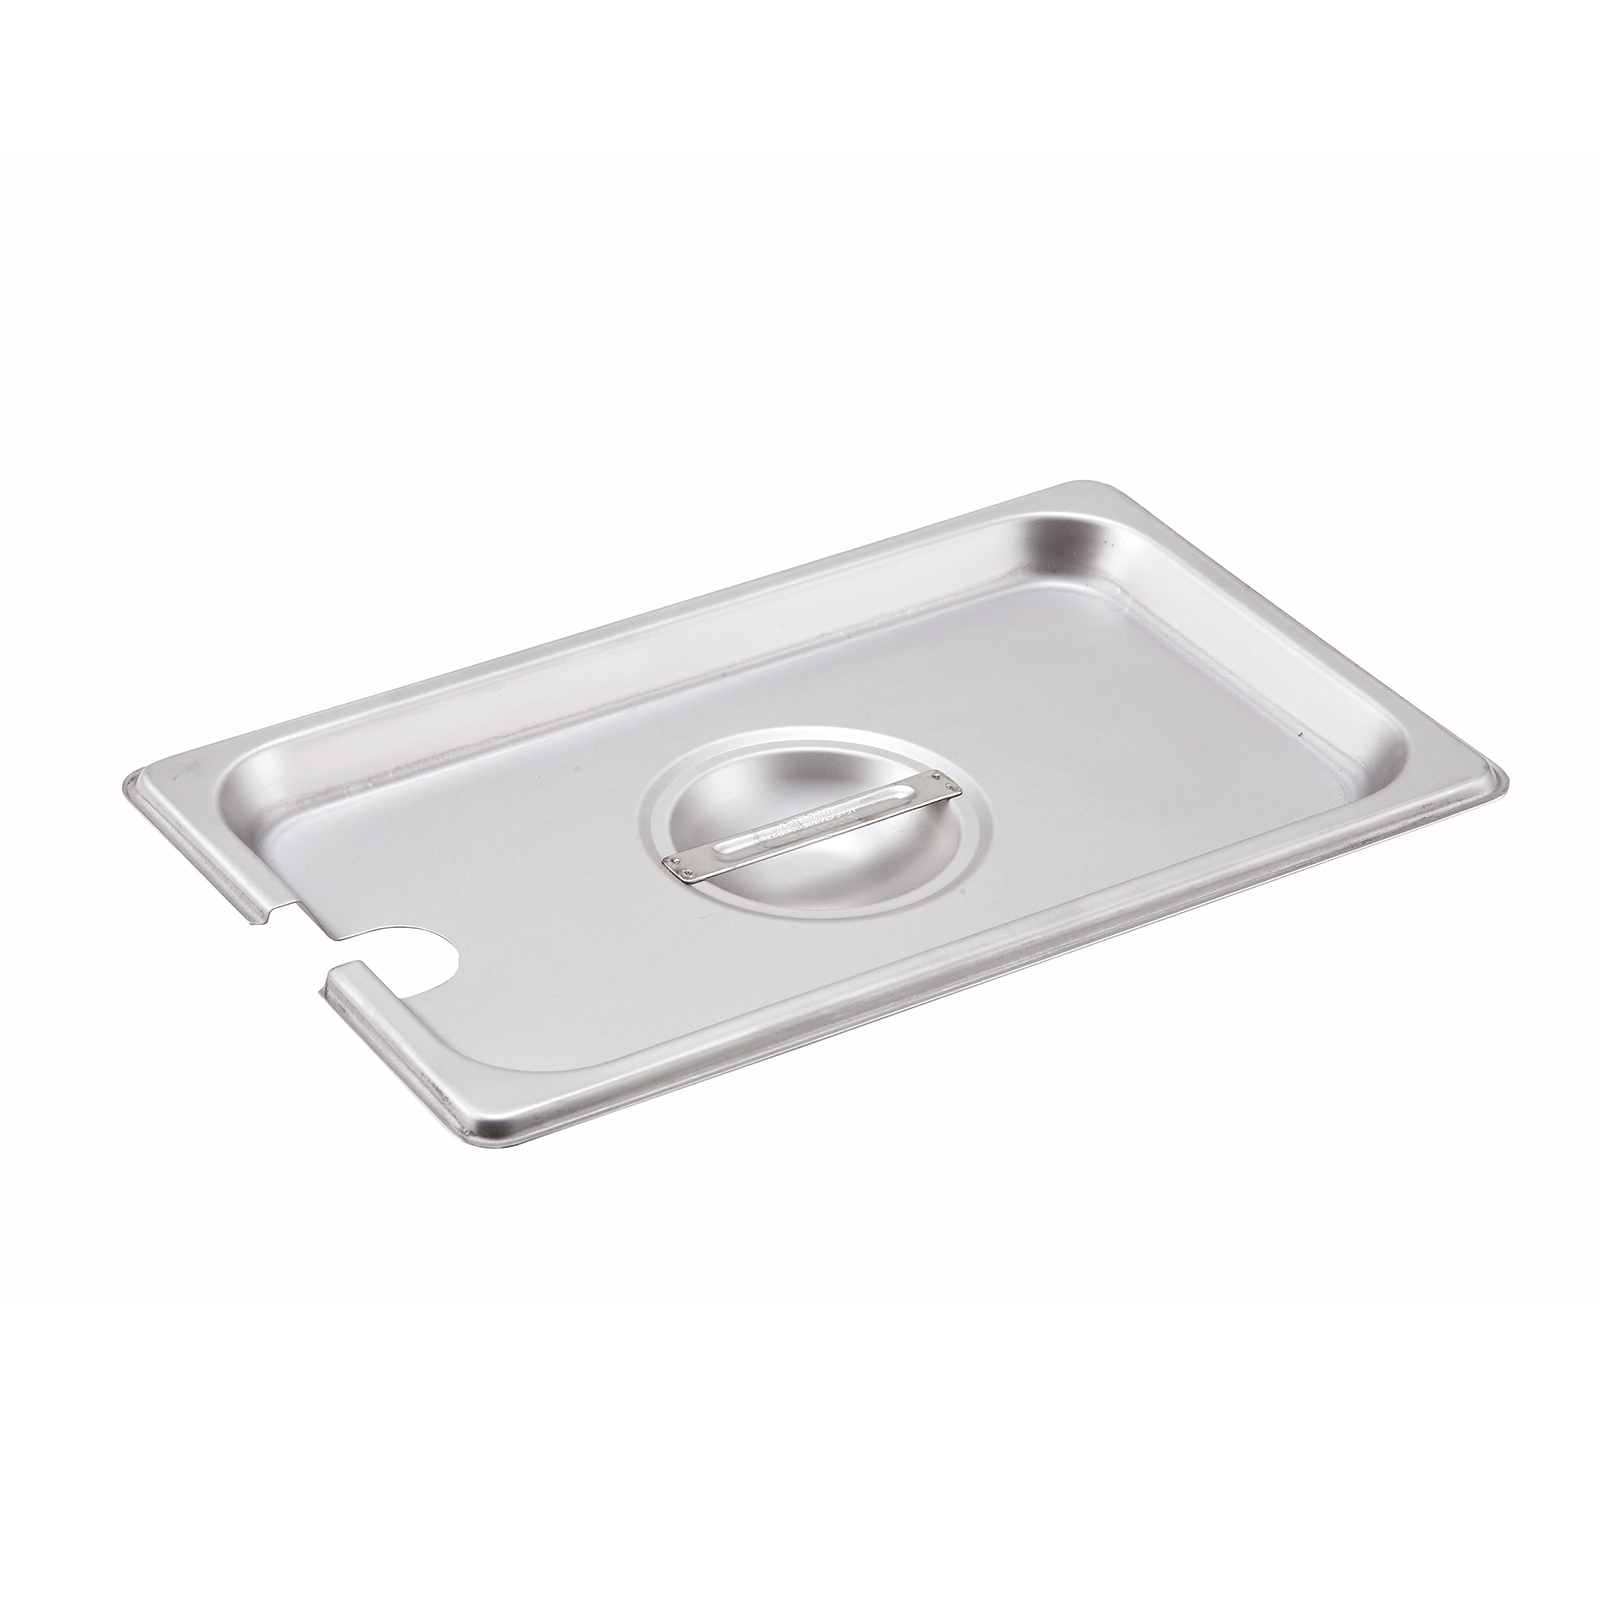 Winco SPCQ steam table pan cover, stainless steel